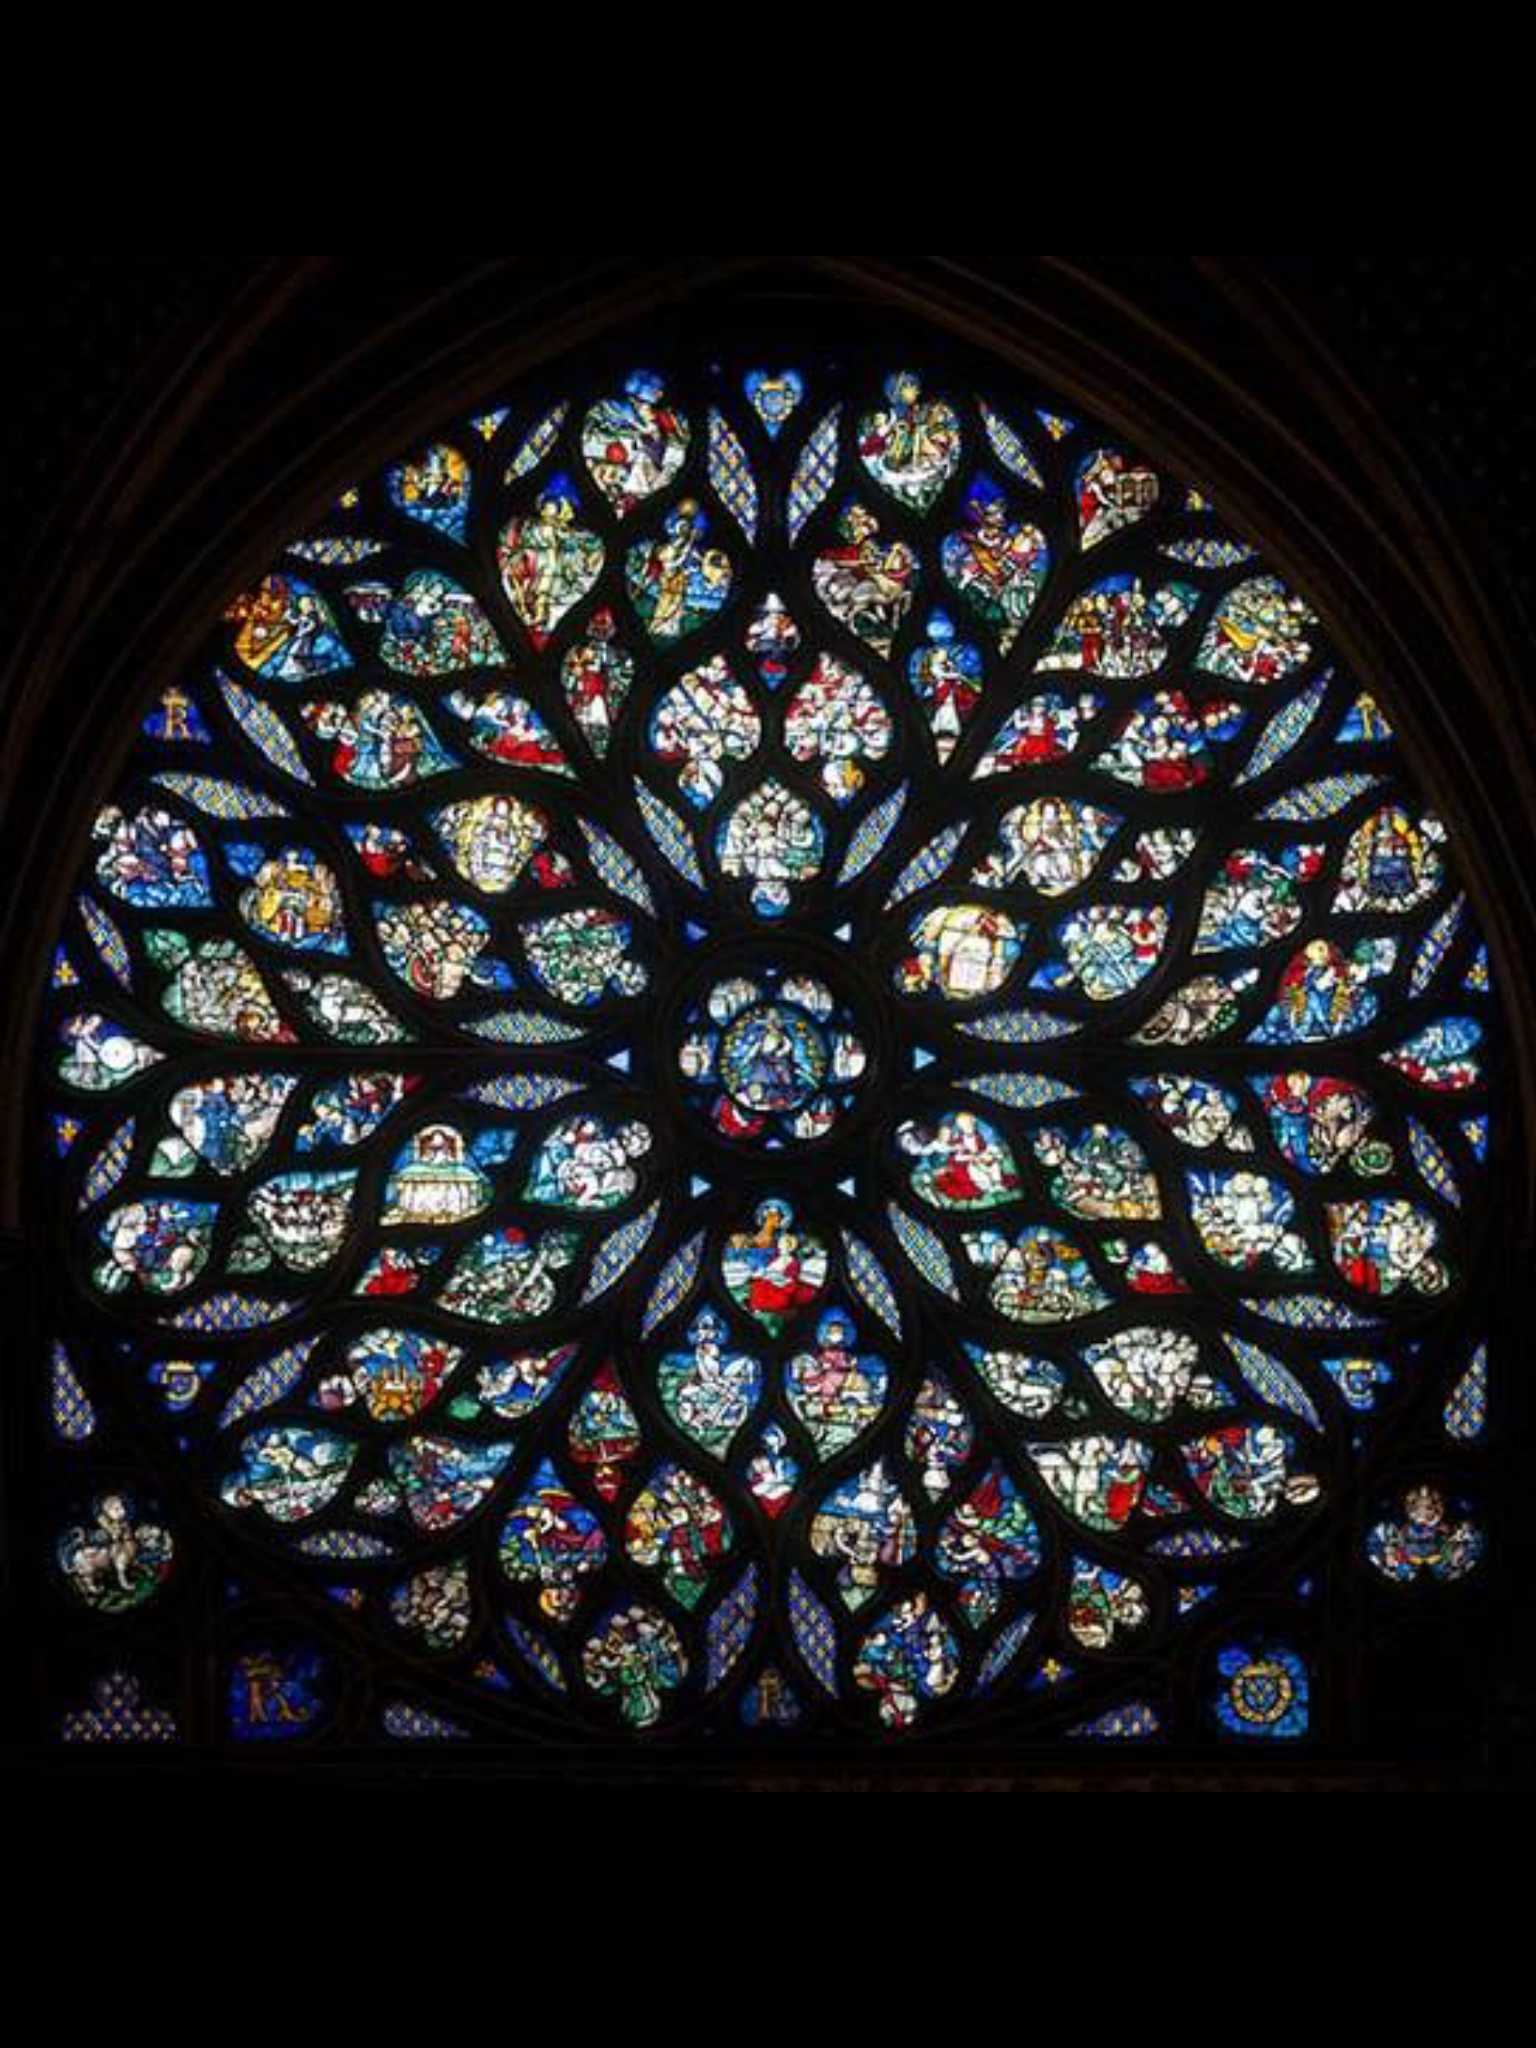 The Stained Glass Windows Of Gothic Masterpiece Sainte Chapelle In Paris Are On Display After A Seven Year Restoration